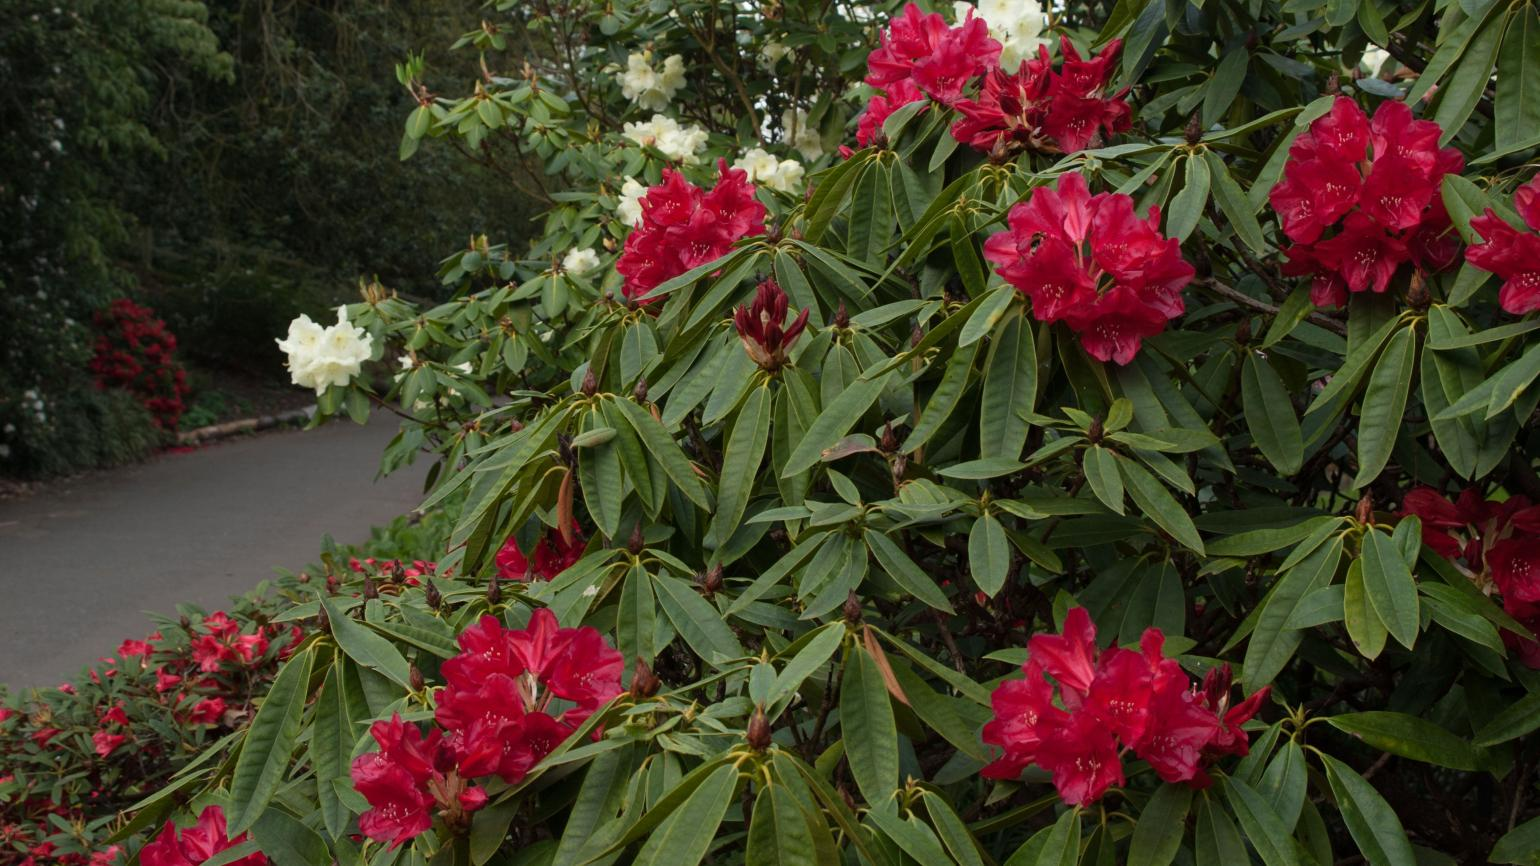 Crimson rhododendrons in the dell